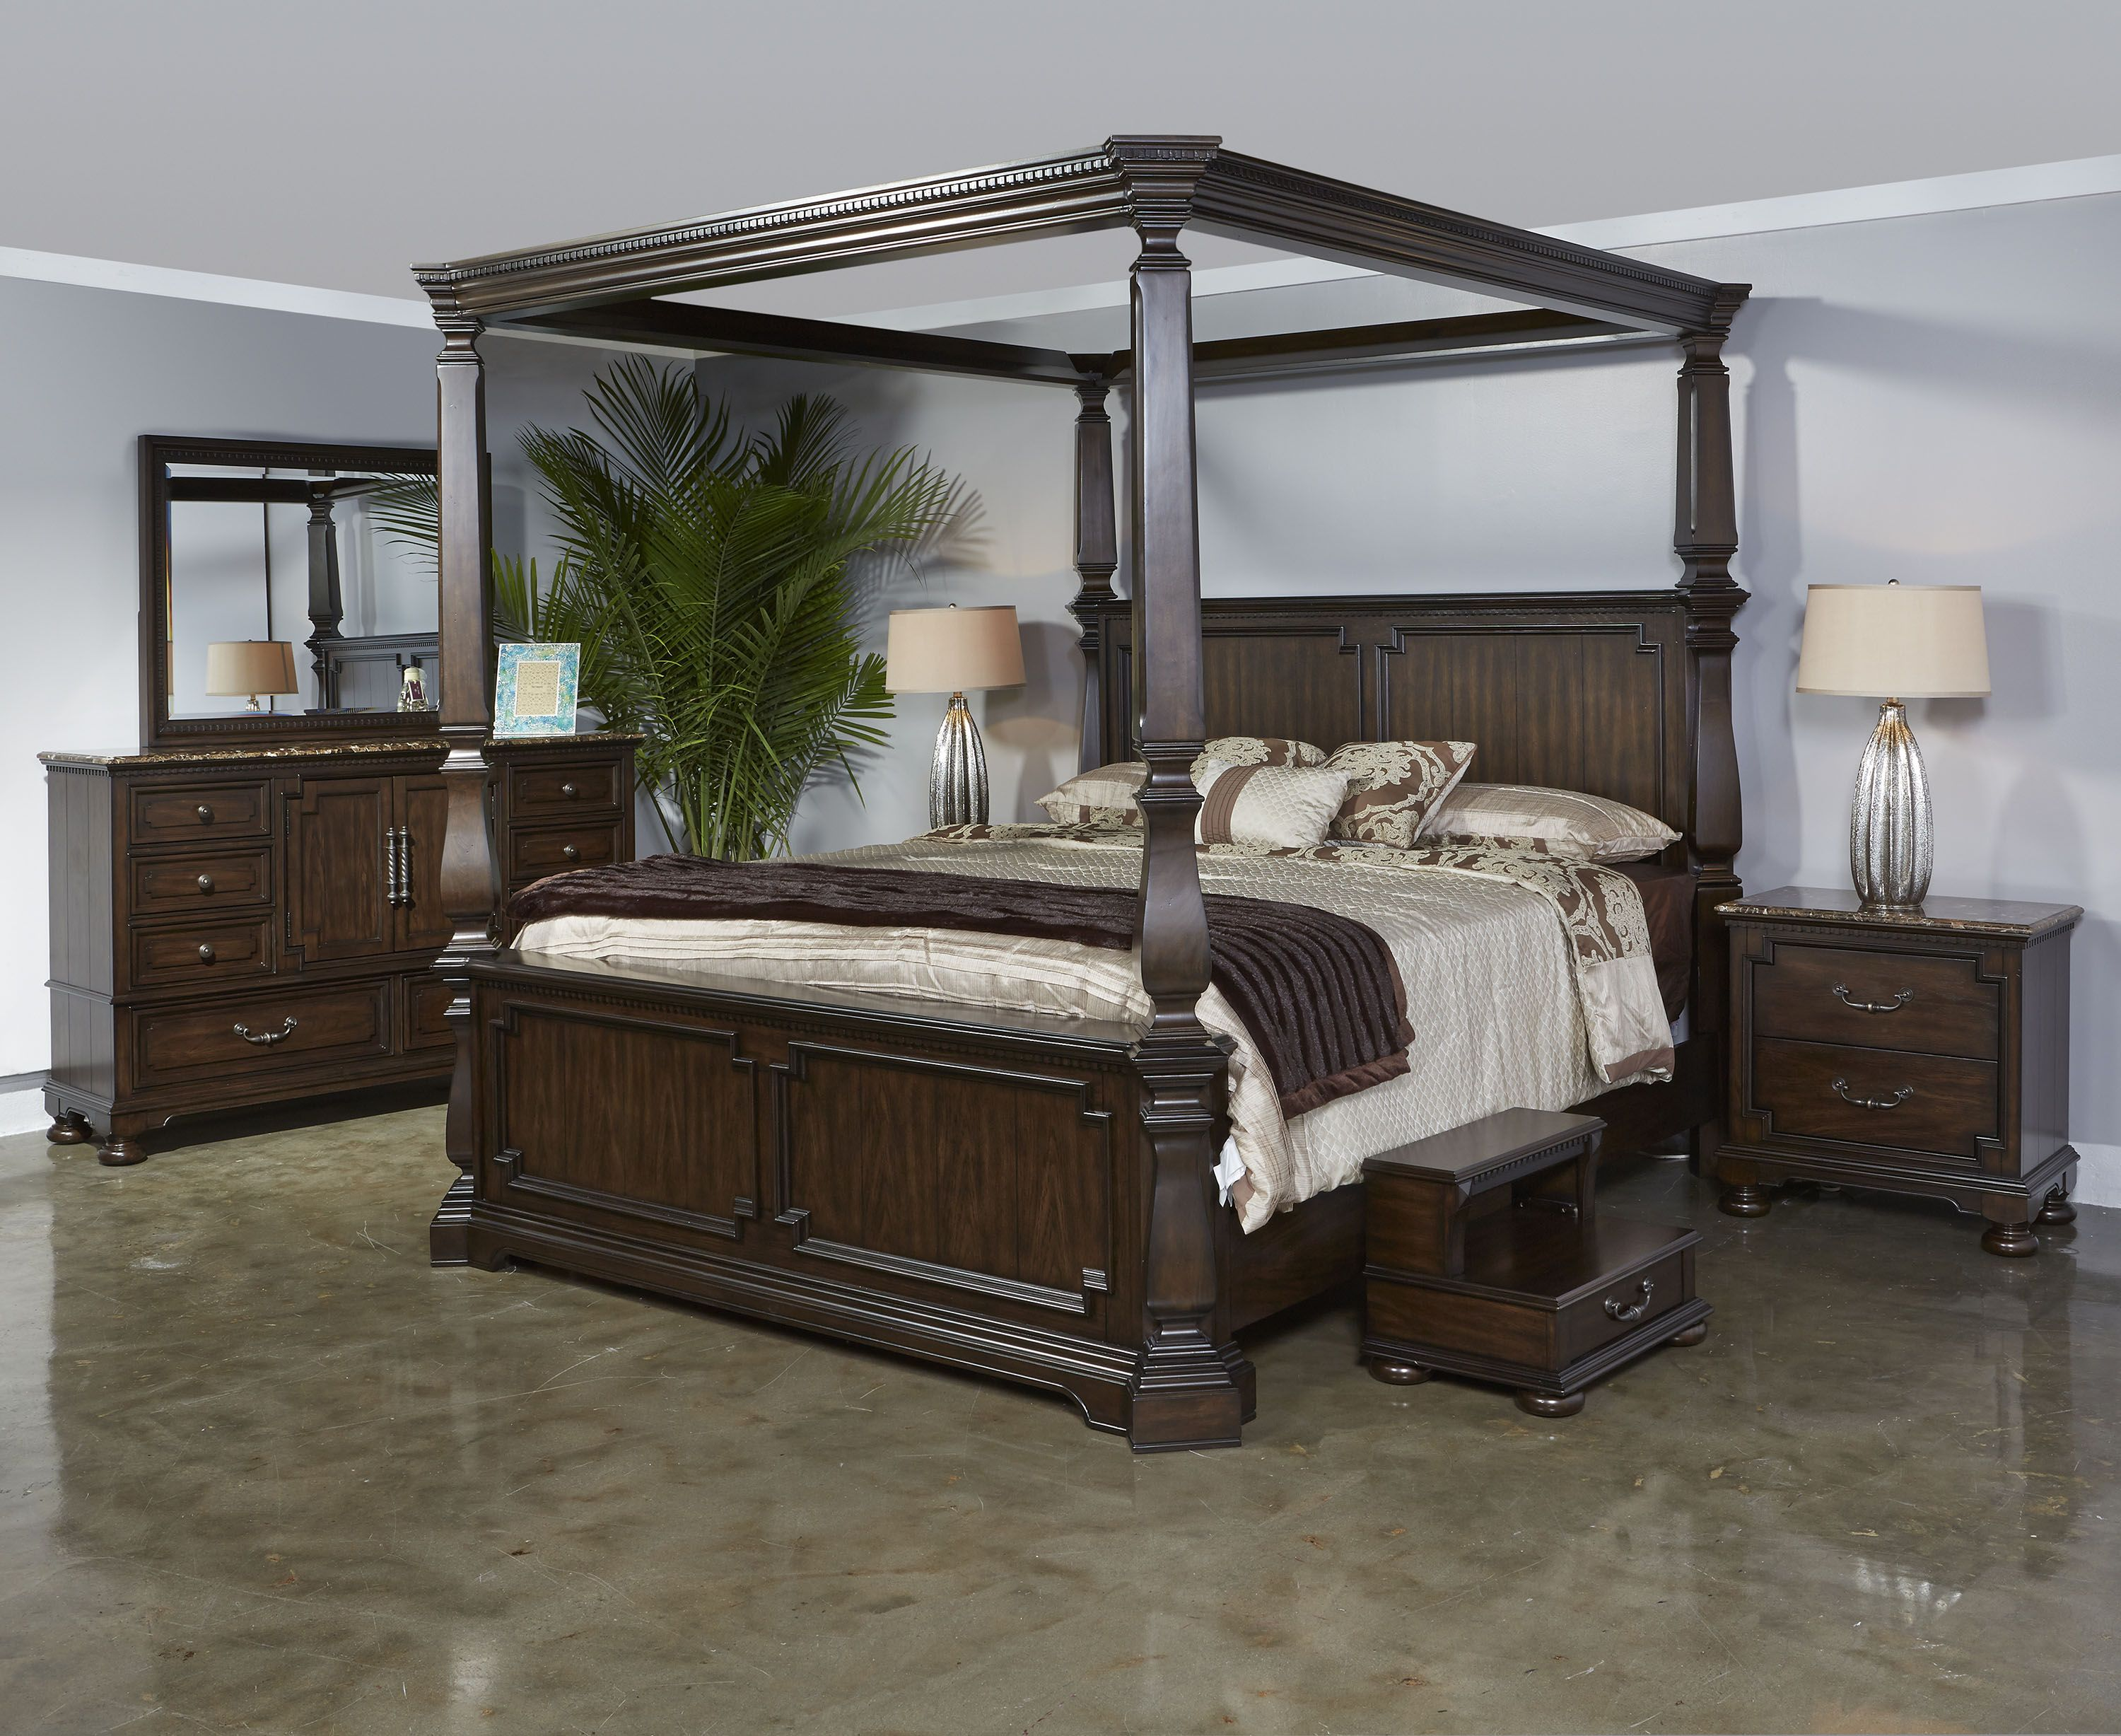 Vienna Canopy Bedroom Canopy bedroom, Furniture, Home decor